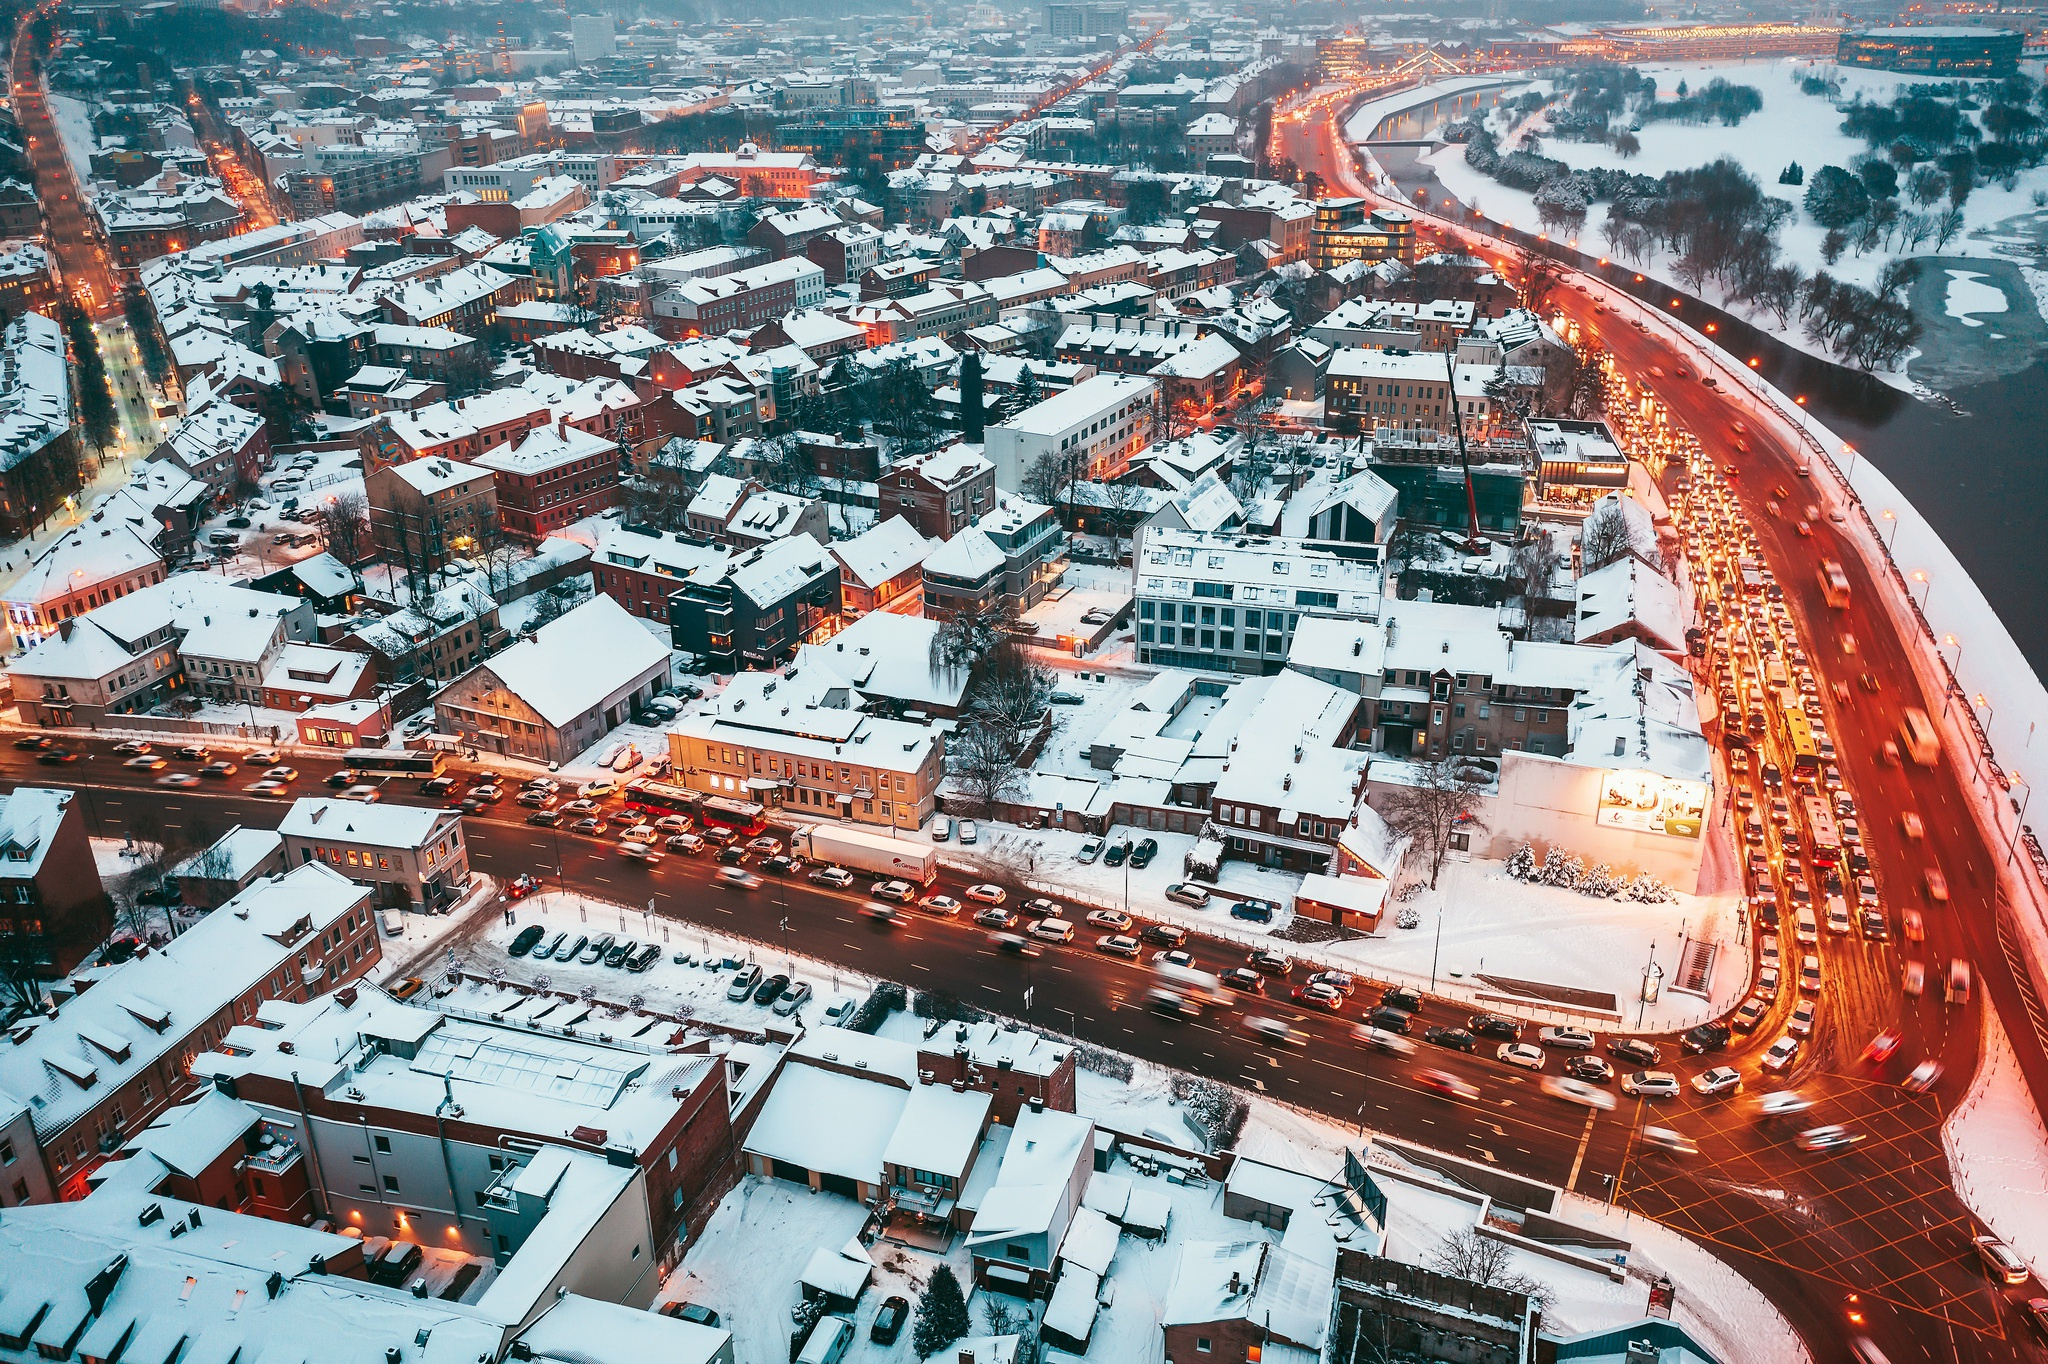 city covered in snow cityscape 1574939521 - City Covered In Snow Cityscape -